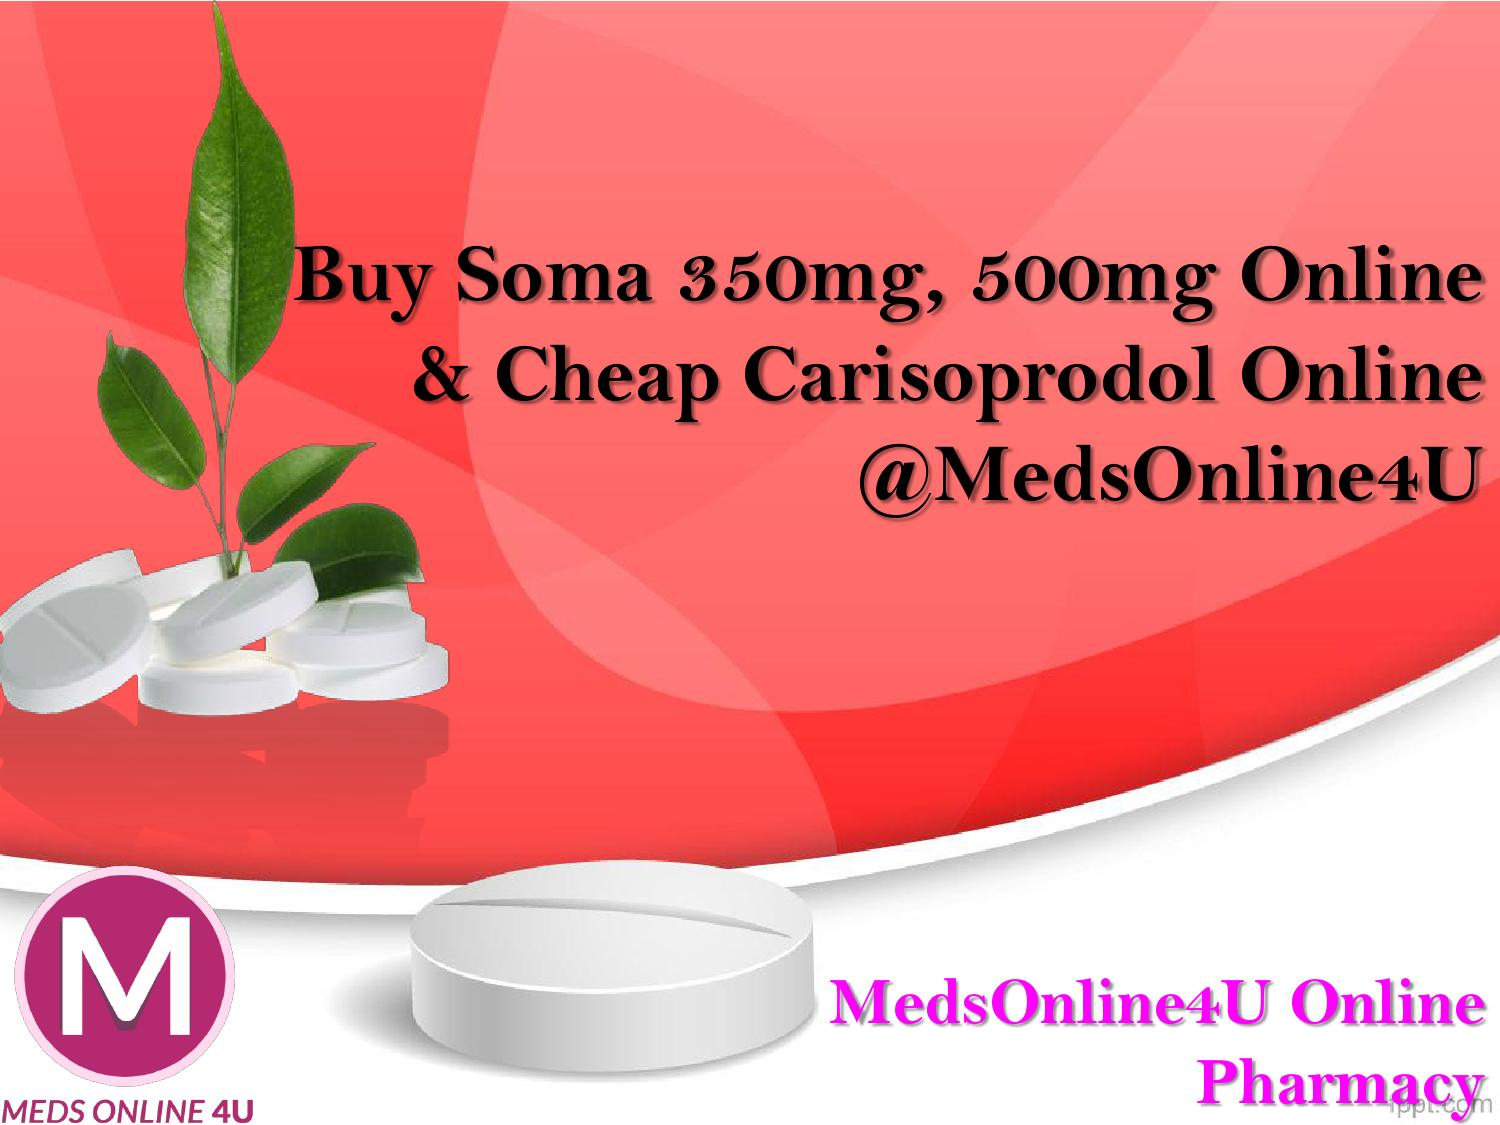 Buy soma 350mg 500mg online cheap carisoprodol online for Pages to buy online